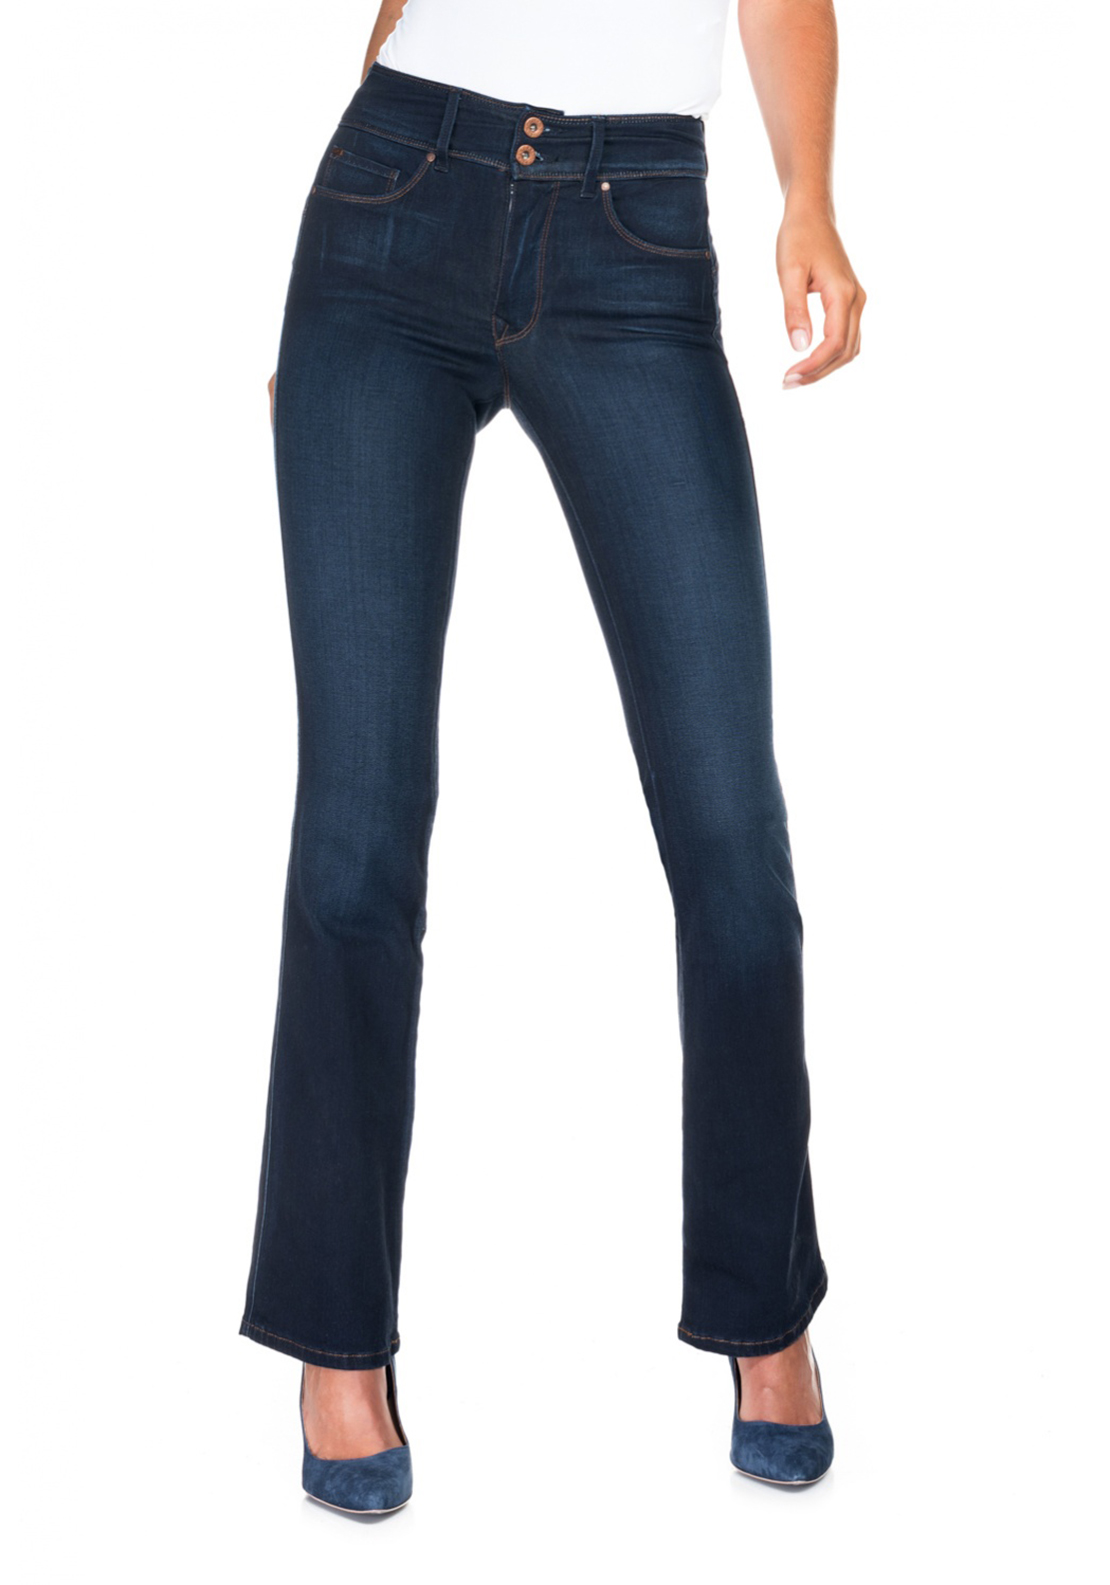 Salsa Secret Soft Touch Push in Bootcut Jeans, Dark Blue Denim